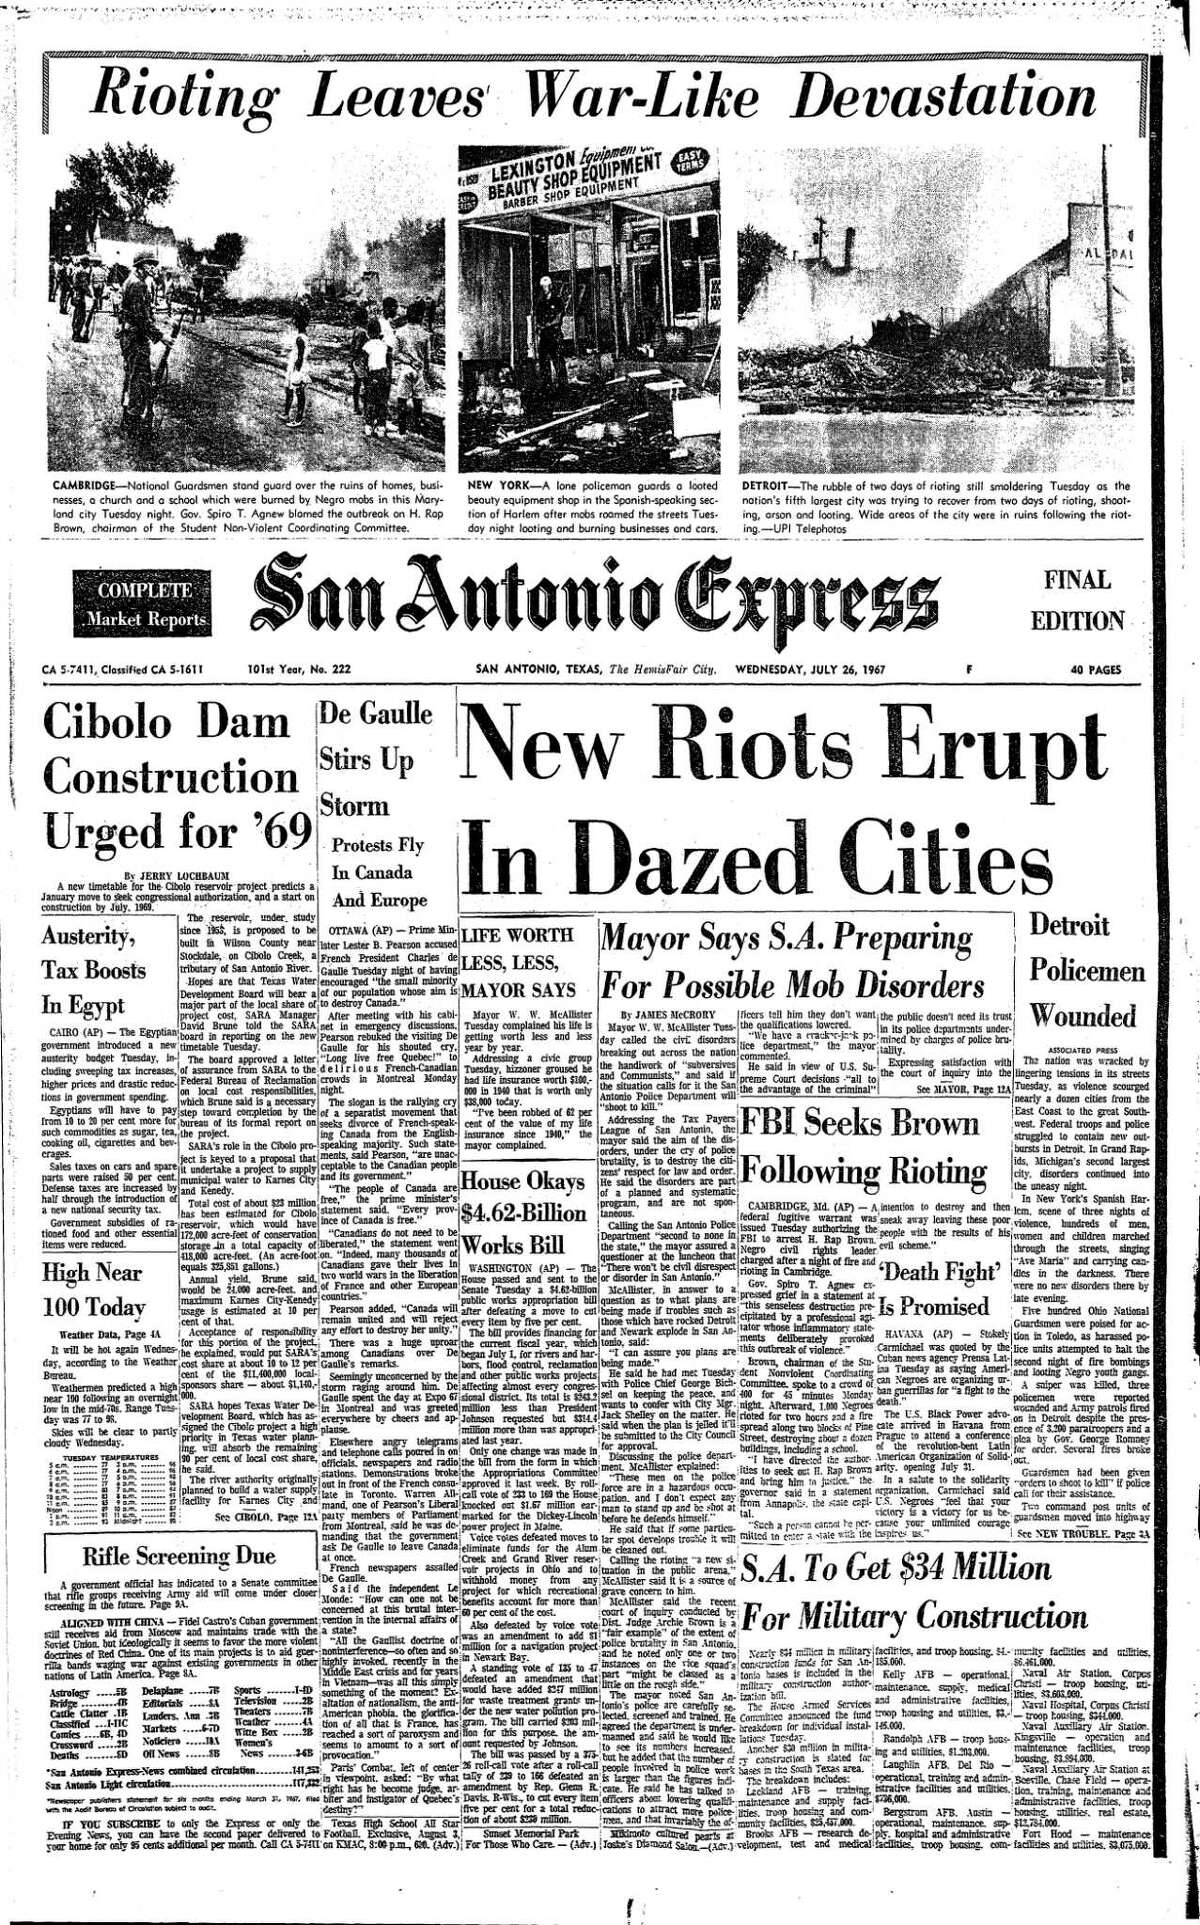 """Riots dominated the front page of the July 26, 1967 San Antonio Express. A triptych of photos from Detroit, New York and Cambridge, Maryland topped the masthead under the headline, ?""""Rioting leaves war-like devastation. Under a national story with the headline, ?""""New riots erupt in dazed cities,?"""" the paper ran a local story about an address that Mayor W.W. McAllister gave to a community group at a luncheon, in which he said the city was preparing for ?""""possible mob disorders.?"""""""